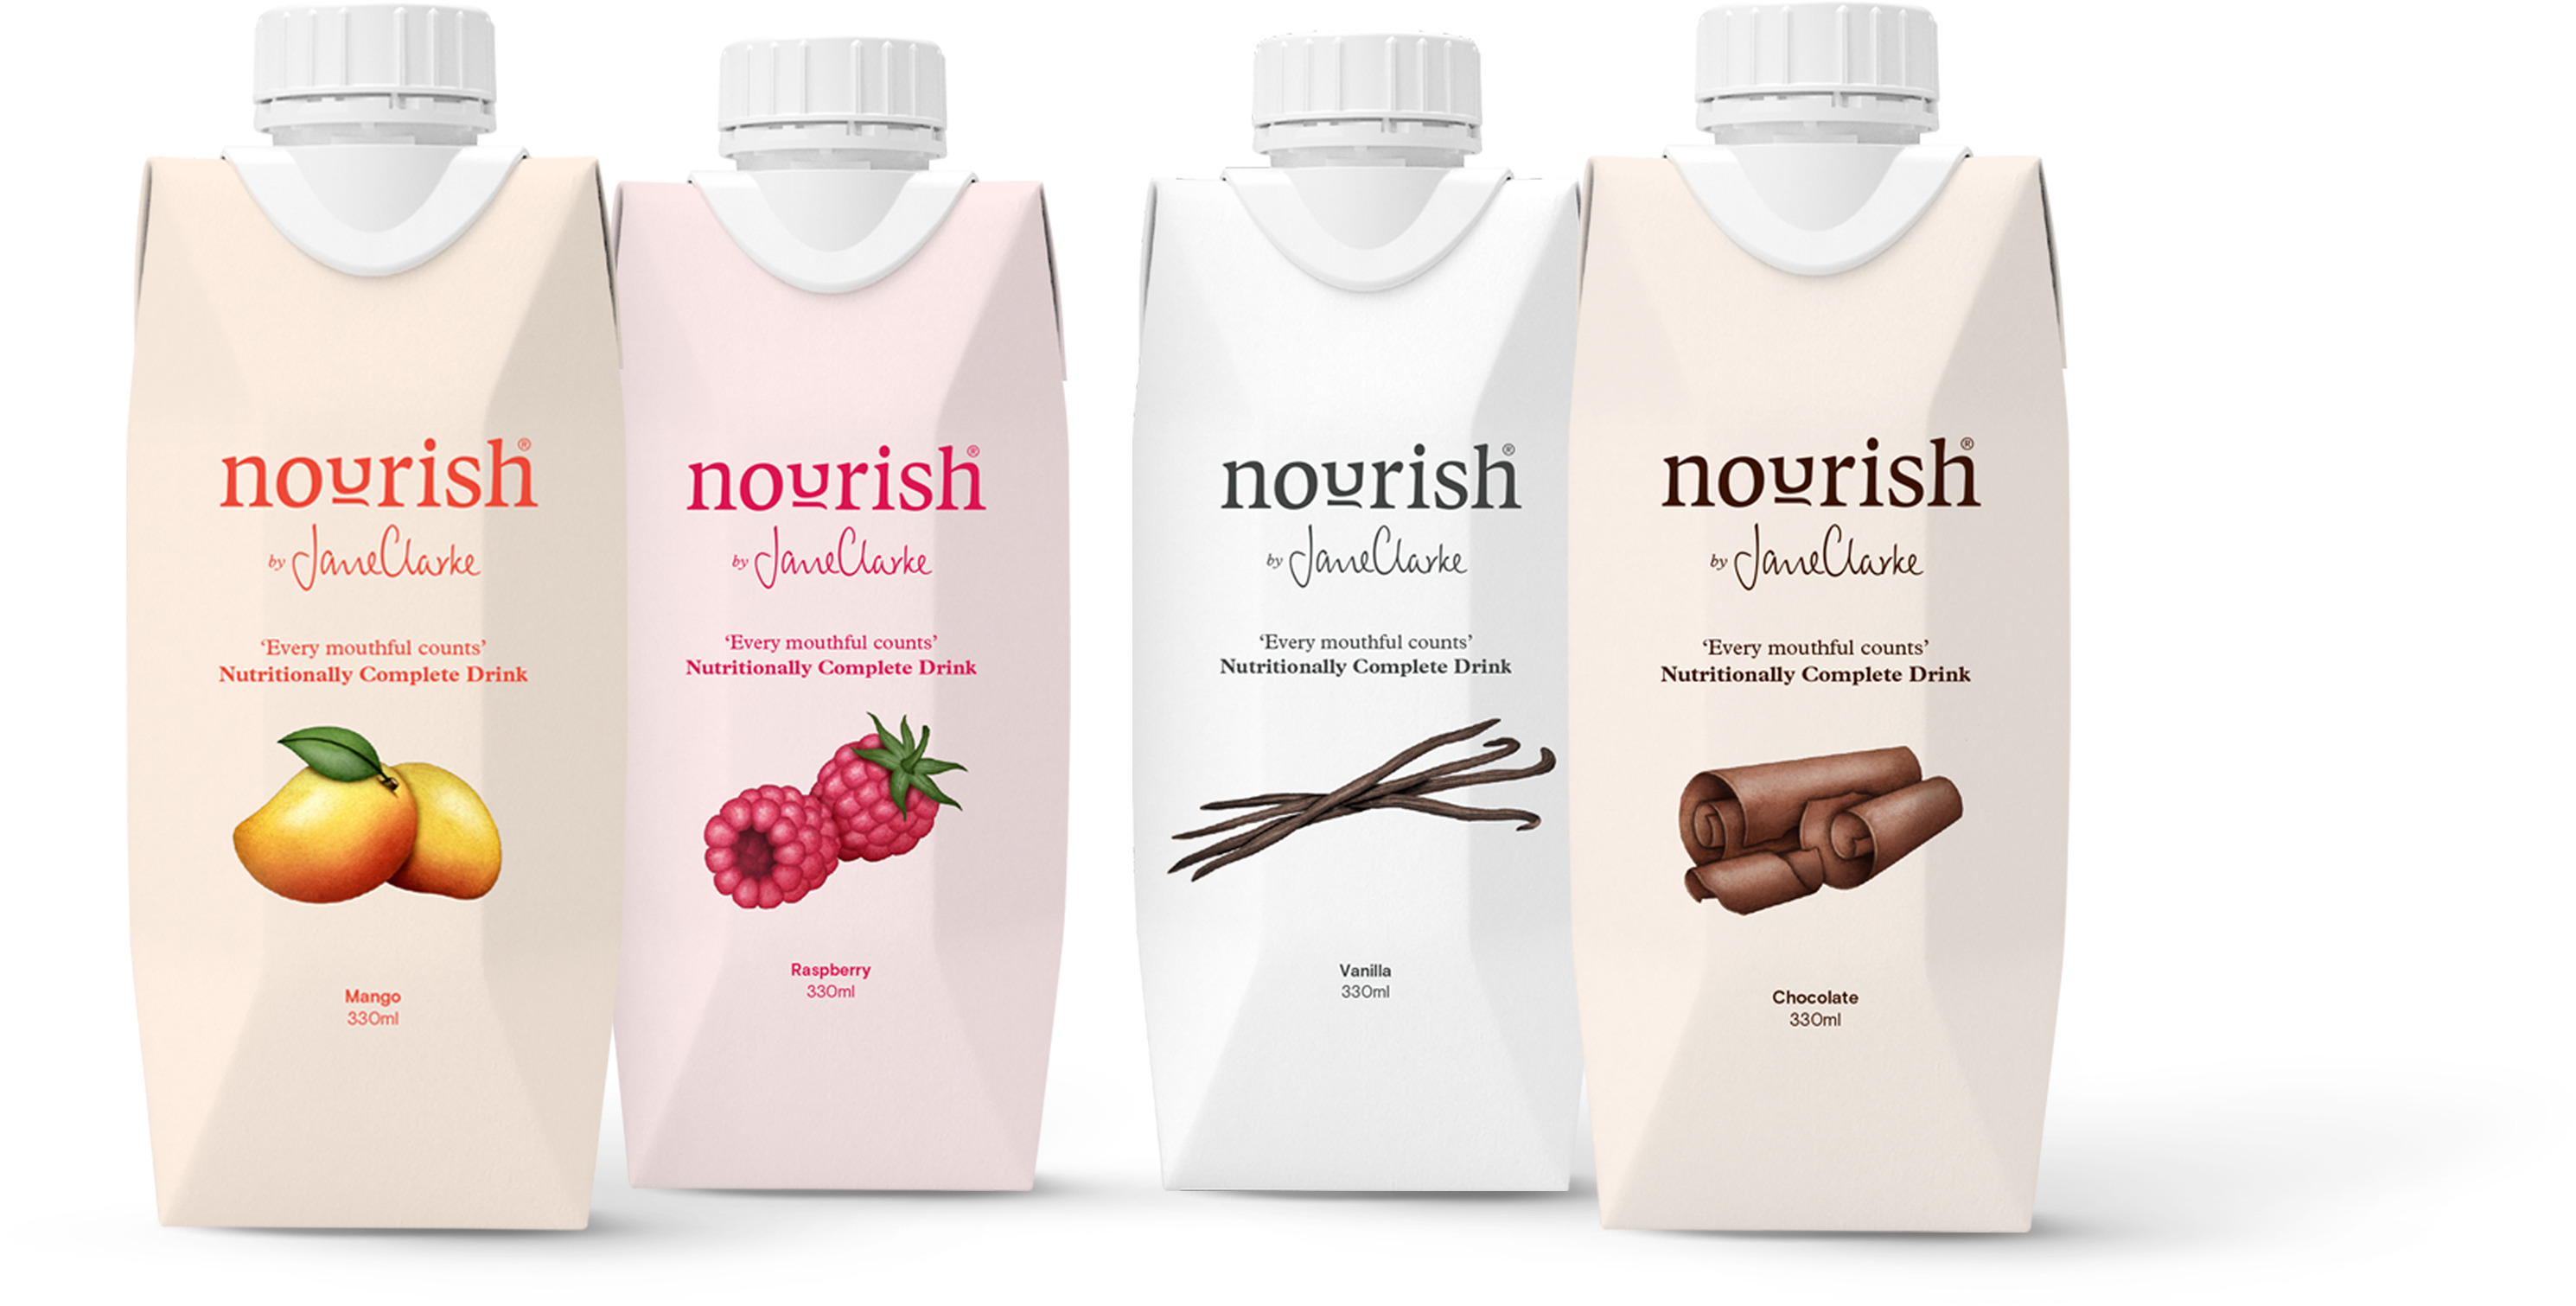 Nourish Drinks